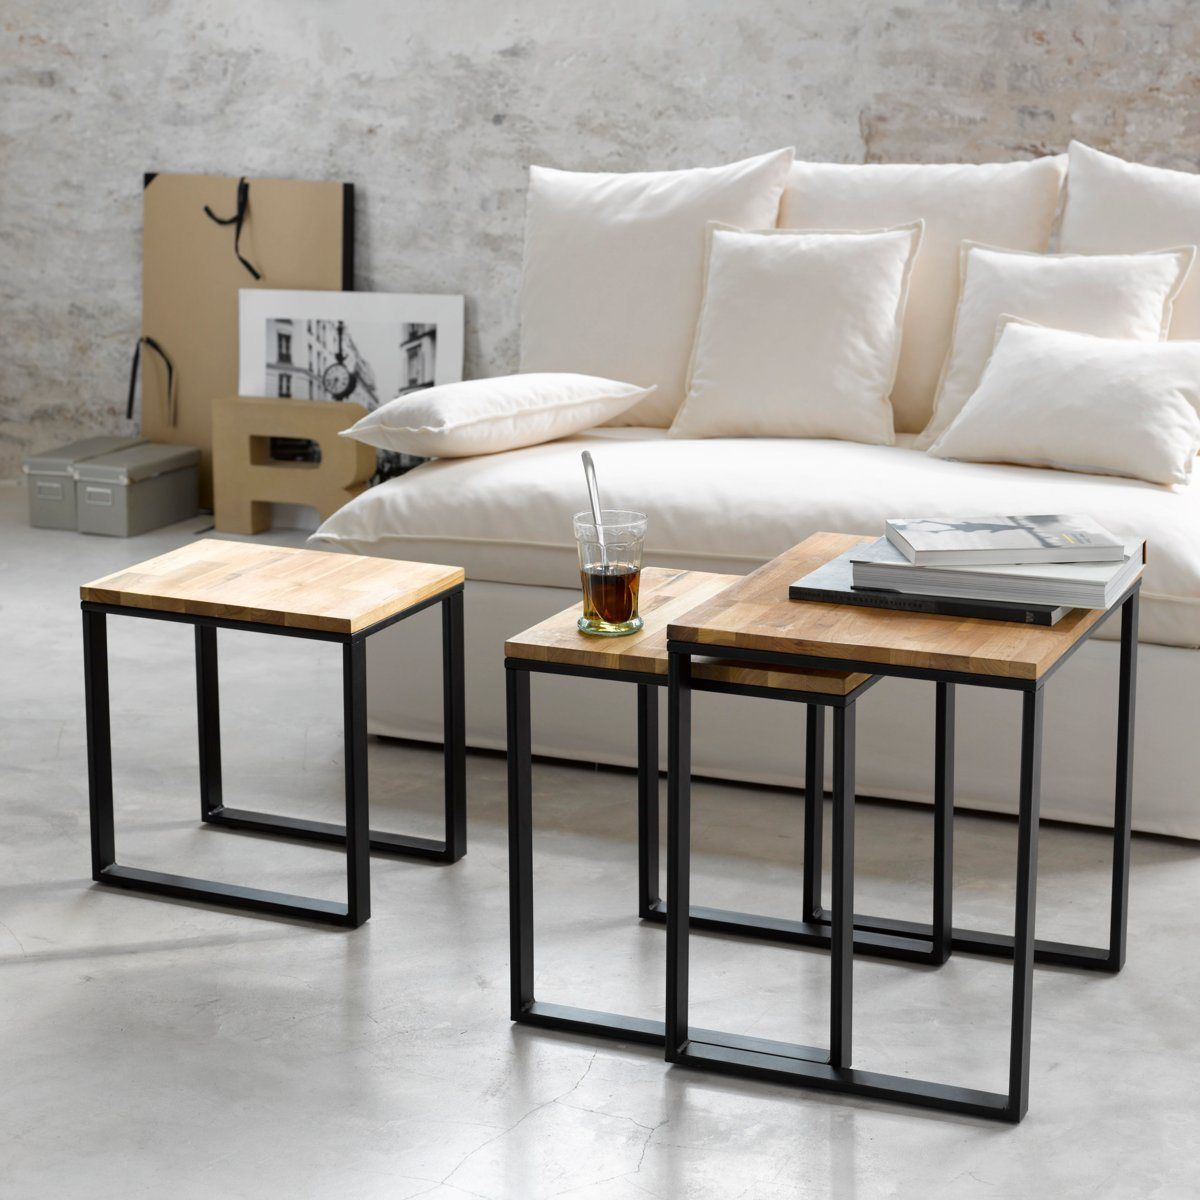 les 25 meilleures id es de la cat gorie table basse gigogne sur pinterest gigogne table. Black Bedroom Furniture Sets. Home Design Ideas